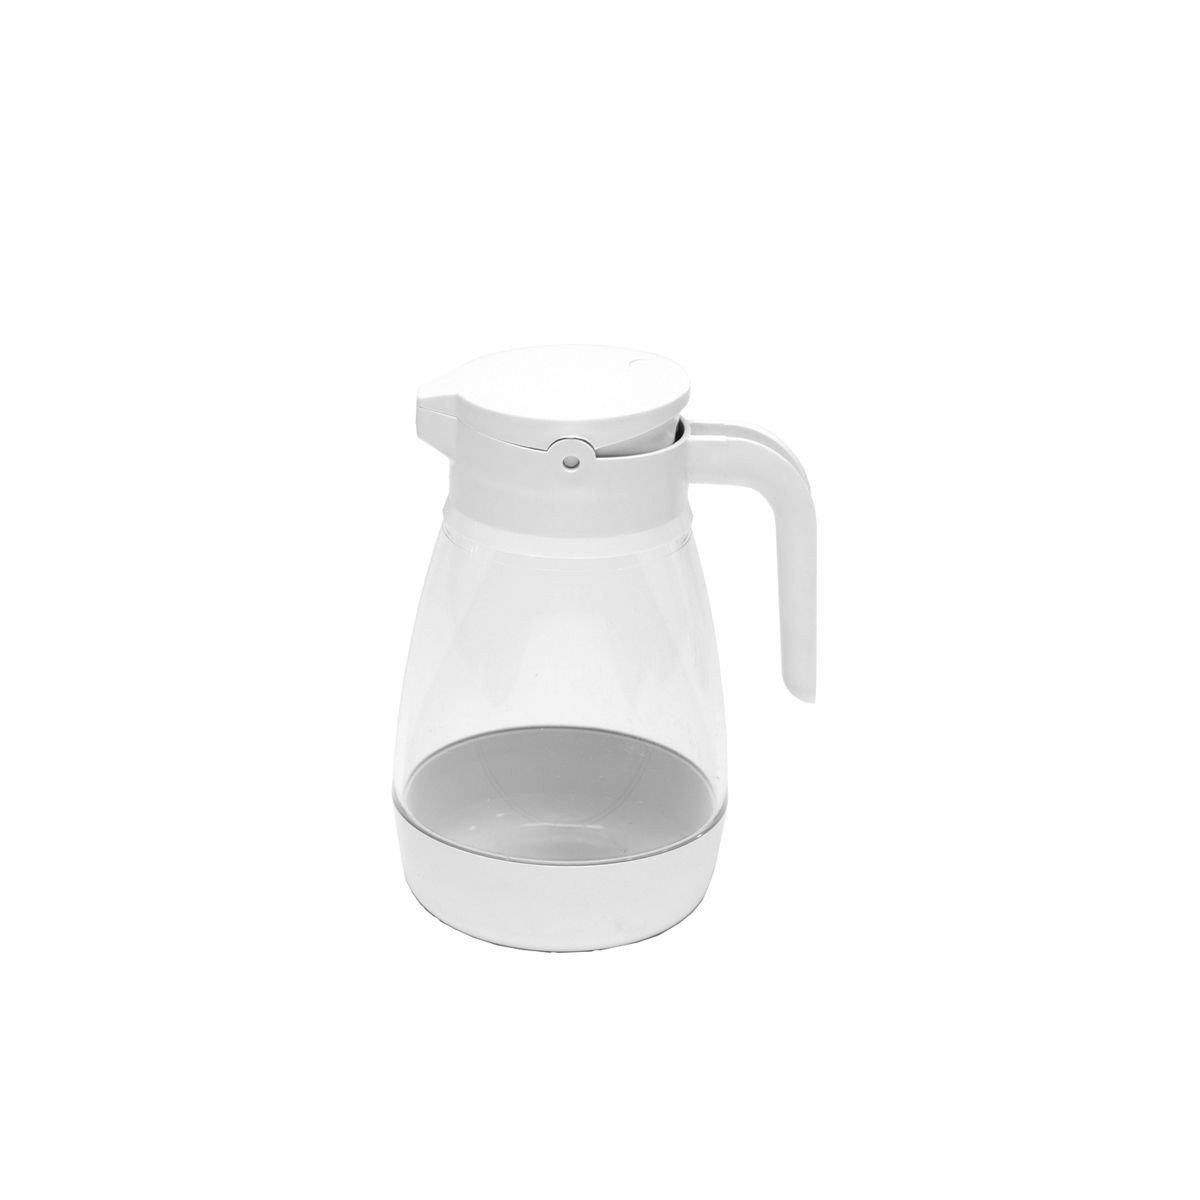 Service Ideas SY916WH White Dripless Syrup Dispenser with Locking Lid, 16 oz.